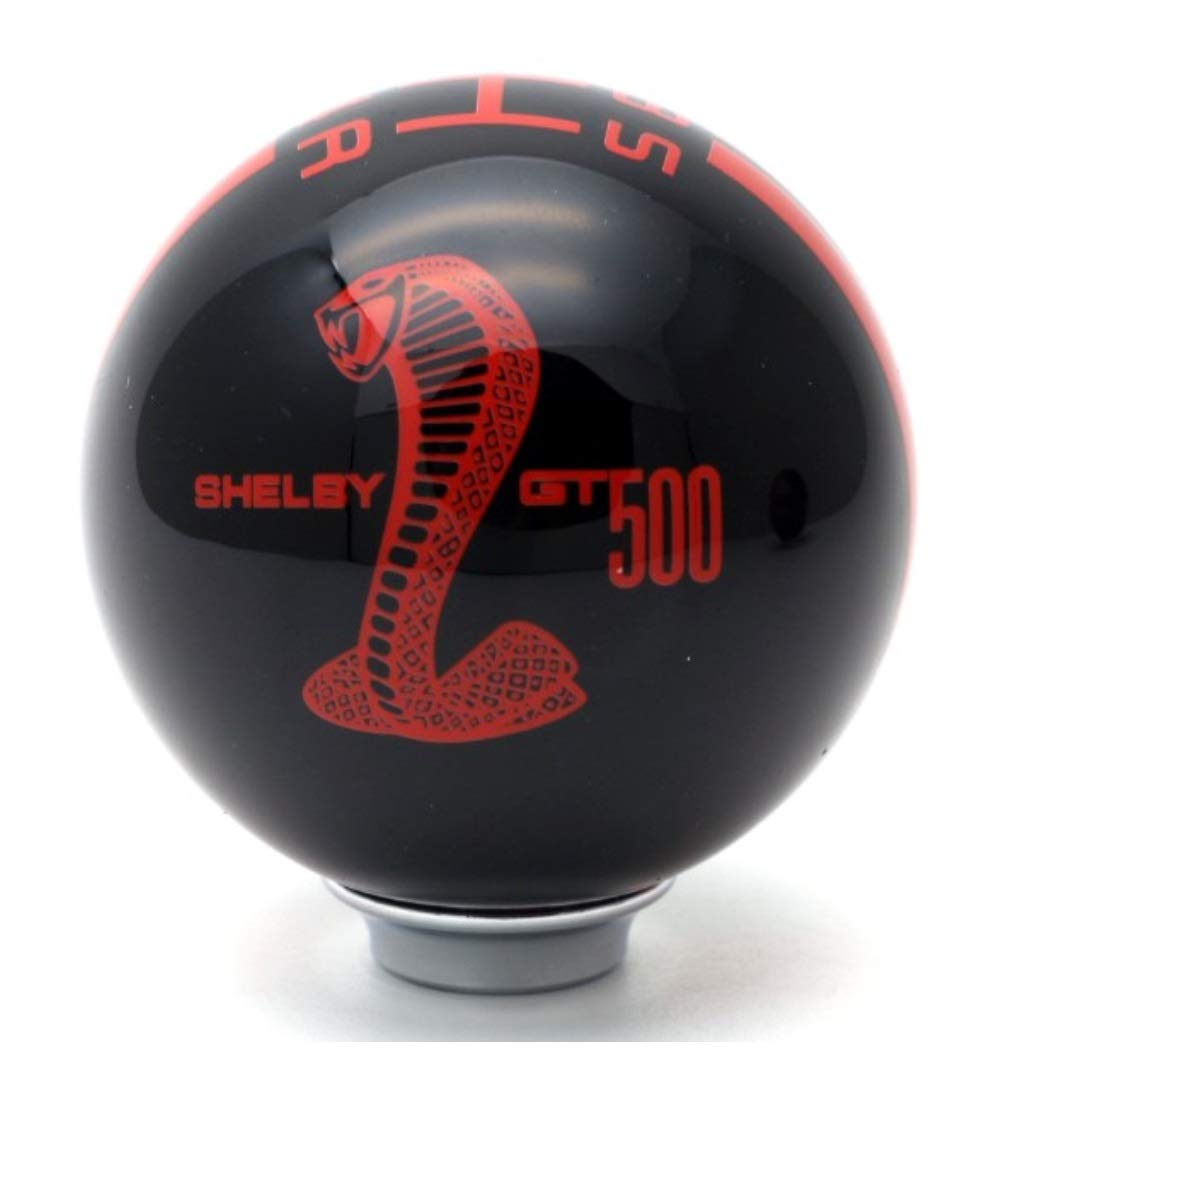 Black Gear 5 Speed Round Ball Type R S Shifter for Mustang Shelby GT 500 Cobra Manual Gear Shift Knob Trim Selector Red White Black